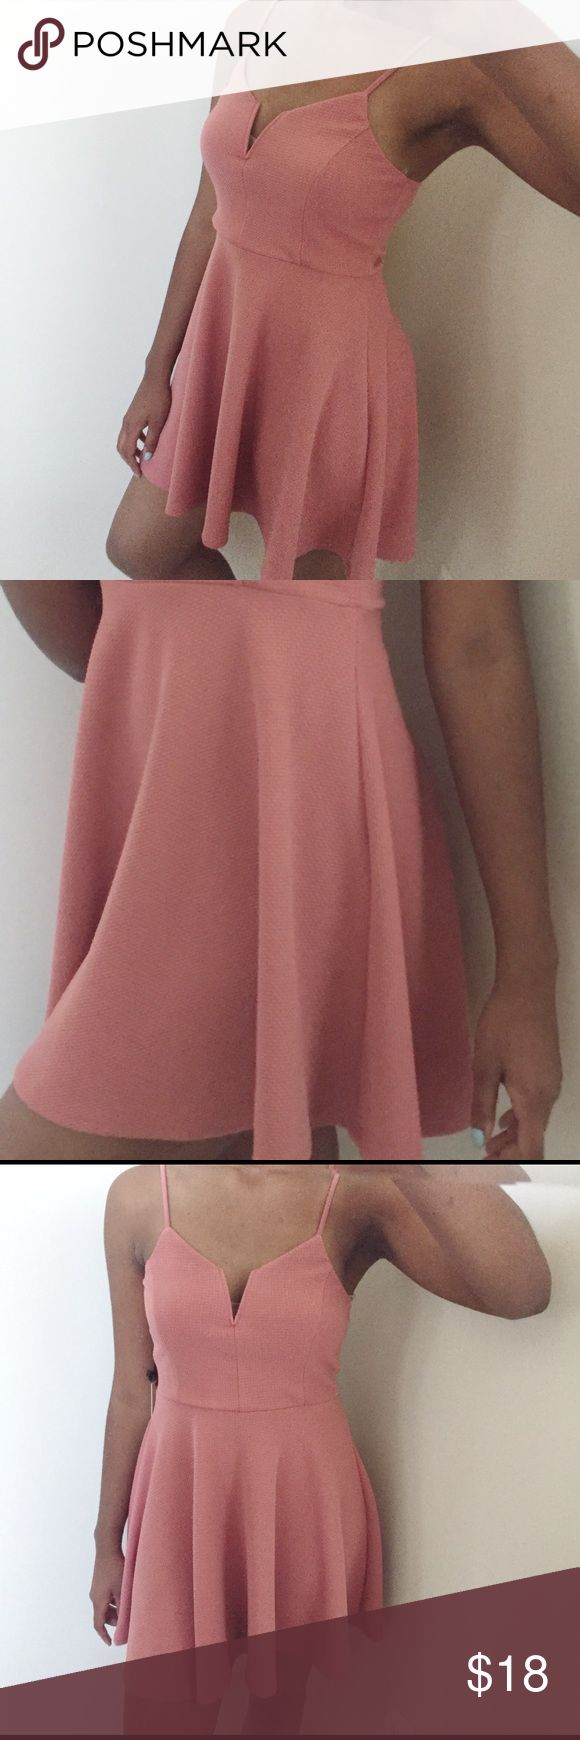 """Peach Colored Haute Monde Dress This chic mid length peach colored dress will give you a fun and cute look whether you choose to wear it for a casual sunny day or a super fun night out. The condition is new with tags but has been worn once only for photos.  Size: medium Condition: Like new with tags Color: peach Length: 34"""" Bust:35"""" Waist: 27"""" Dresses Midi"""